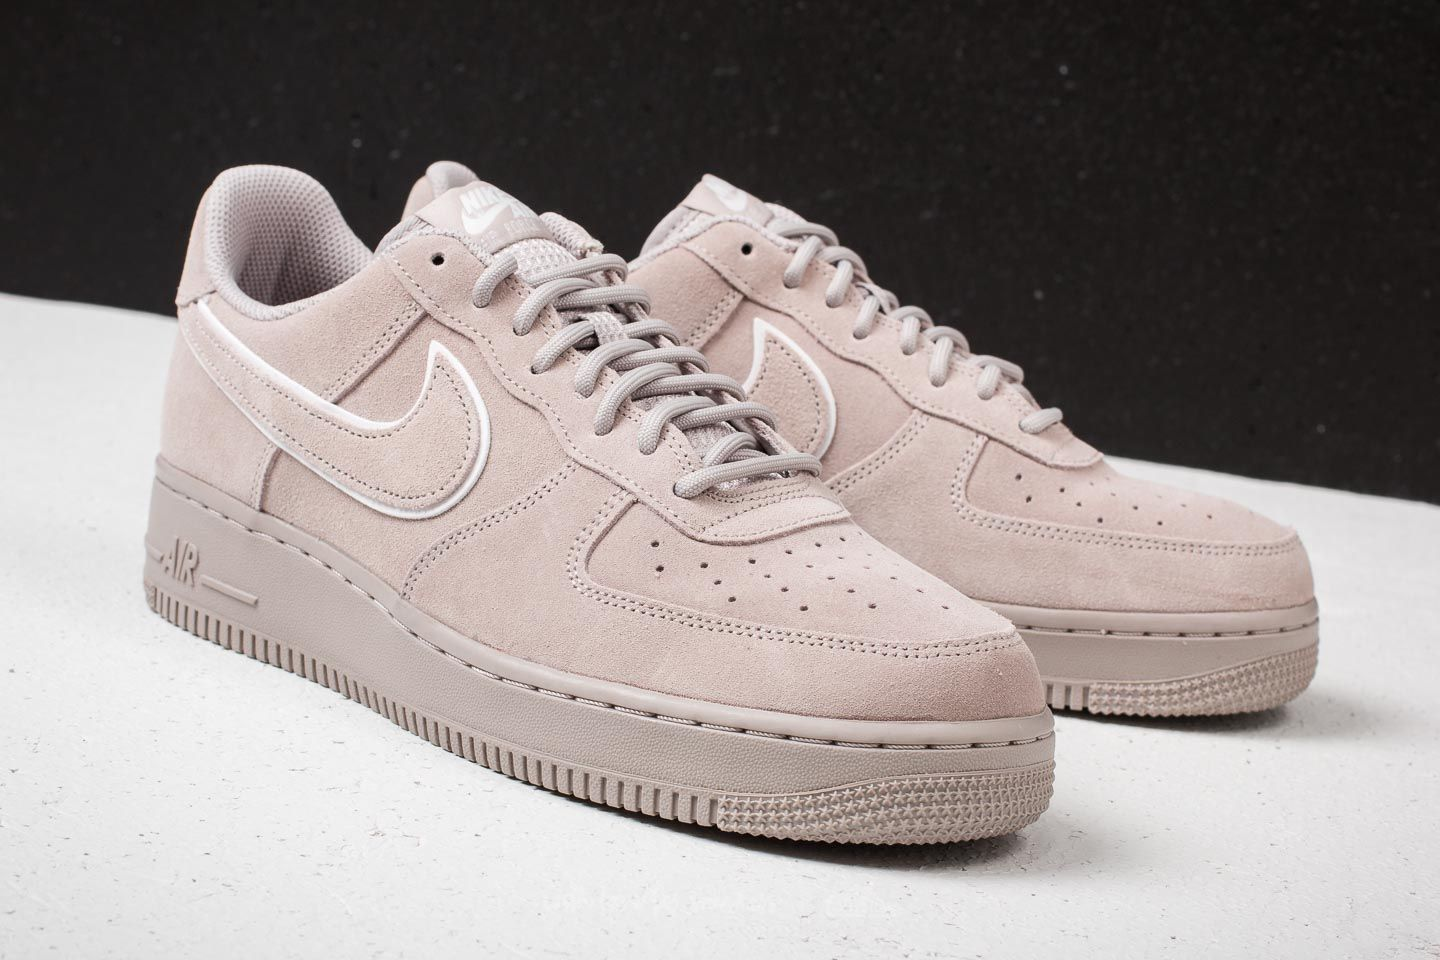 New Year Deals Nike Air Force One 07 LV8 Suede Moon Particle